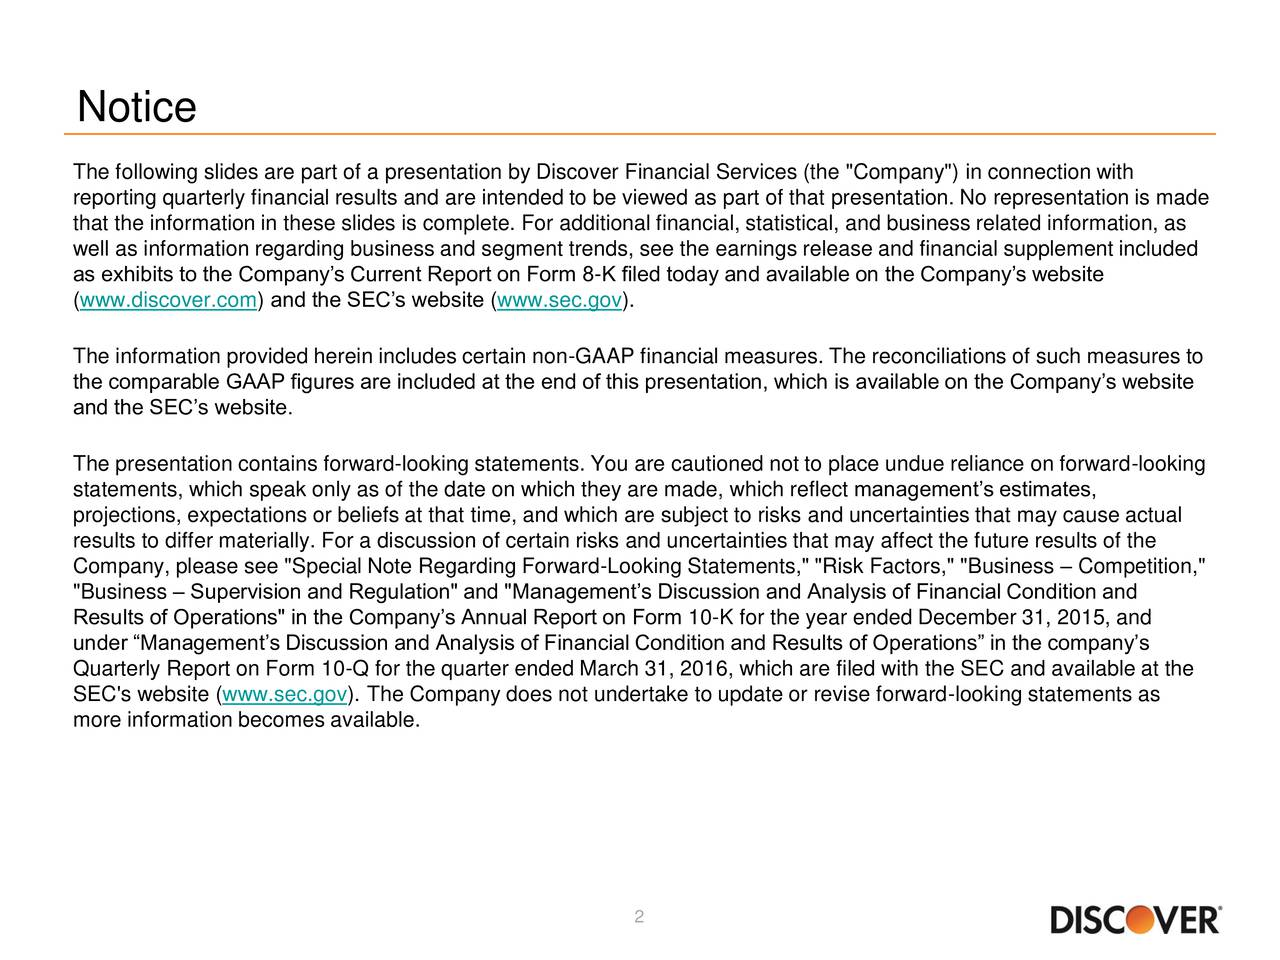 """The following slides are part of a presentation by Discover Financial Services (the """"Company"""") in connection with reporting quarterly financial results and are intended to be viewed as part of that presentation. No representation is made that the information in these slides is complete. For additional financial, statistical, and business related information, as well as information regarding business and segment trends, see the earnings release and financial supplement included as exhibits to the Companys Current Report on Form 8-K filed today and available on the Companys website (www.discover.com) and the SECs website (www.sec.gov). The information provided herein includes certain non-GAAP financial measures. The reconciliations of such measures to the comparable GAAP figures are included at the end of this presentation, which is available on the Companys website and the SECs website. The presentation contains forward-looking statements. You are cautioned not to place undue reliance on forward-looking statements, which speak only as of the date on which they are made, which reflect managements estimates, projections, expectations or beliefs at that time, and which are subject to risks and uncertainties that may cause actual results to differ materially. For a discussion of certain risks and uncertainties that may affect the future results of the Company, please see """"Special Note Regarding Forward-Looking Statements,"""" """"Risk Factors,"""" """"Business  Competition,"""" """"Business  Supervision and Regulation"""" and """"Managements Discussion and Analysis of Financial Condition and Results of Operations"""" in the Companys Annual Report on Form 10-K for the year ended December 31, 2015, and under Managements Discussion and Analysis of Financial Condition and Results of Operations in the companys Quarterly Report on Form 10-Q for the quarter ended March 31, 2016, which are filed with the SEC and available at the SEC's website (www.sec.gov). The Company does not undertake to update or revi"""